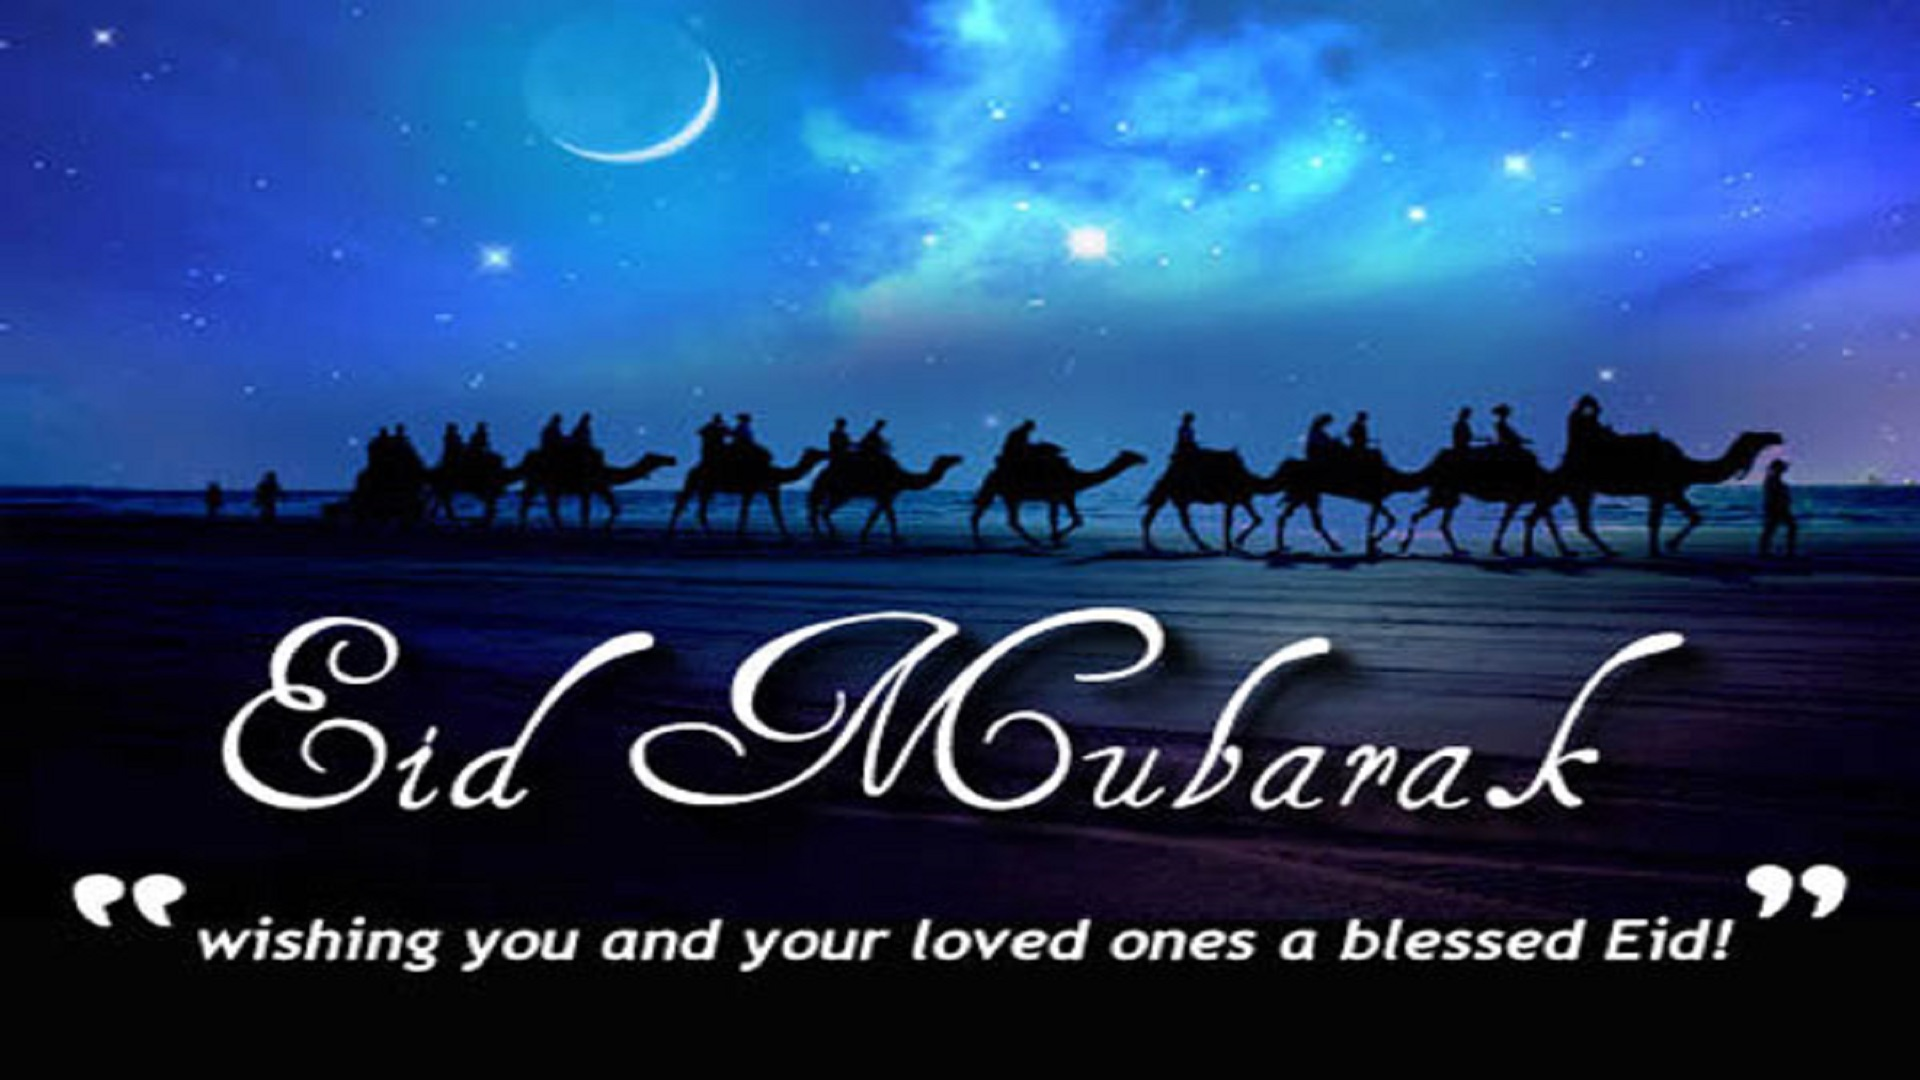 eid-ul-fitr-wallpapers-greetings-free-hd